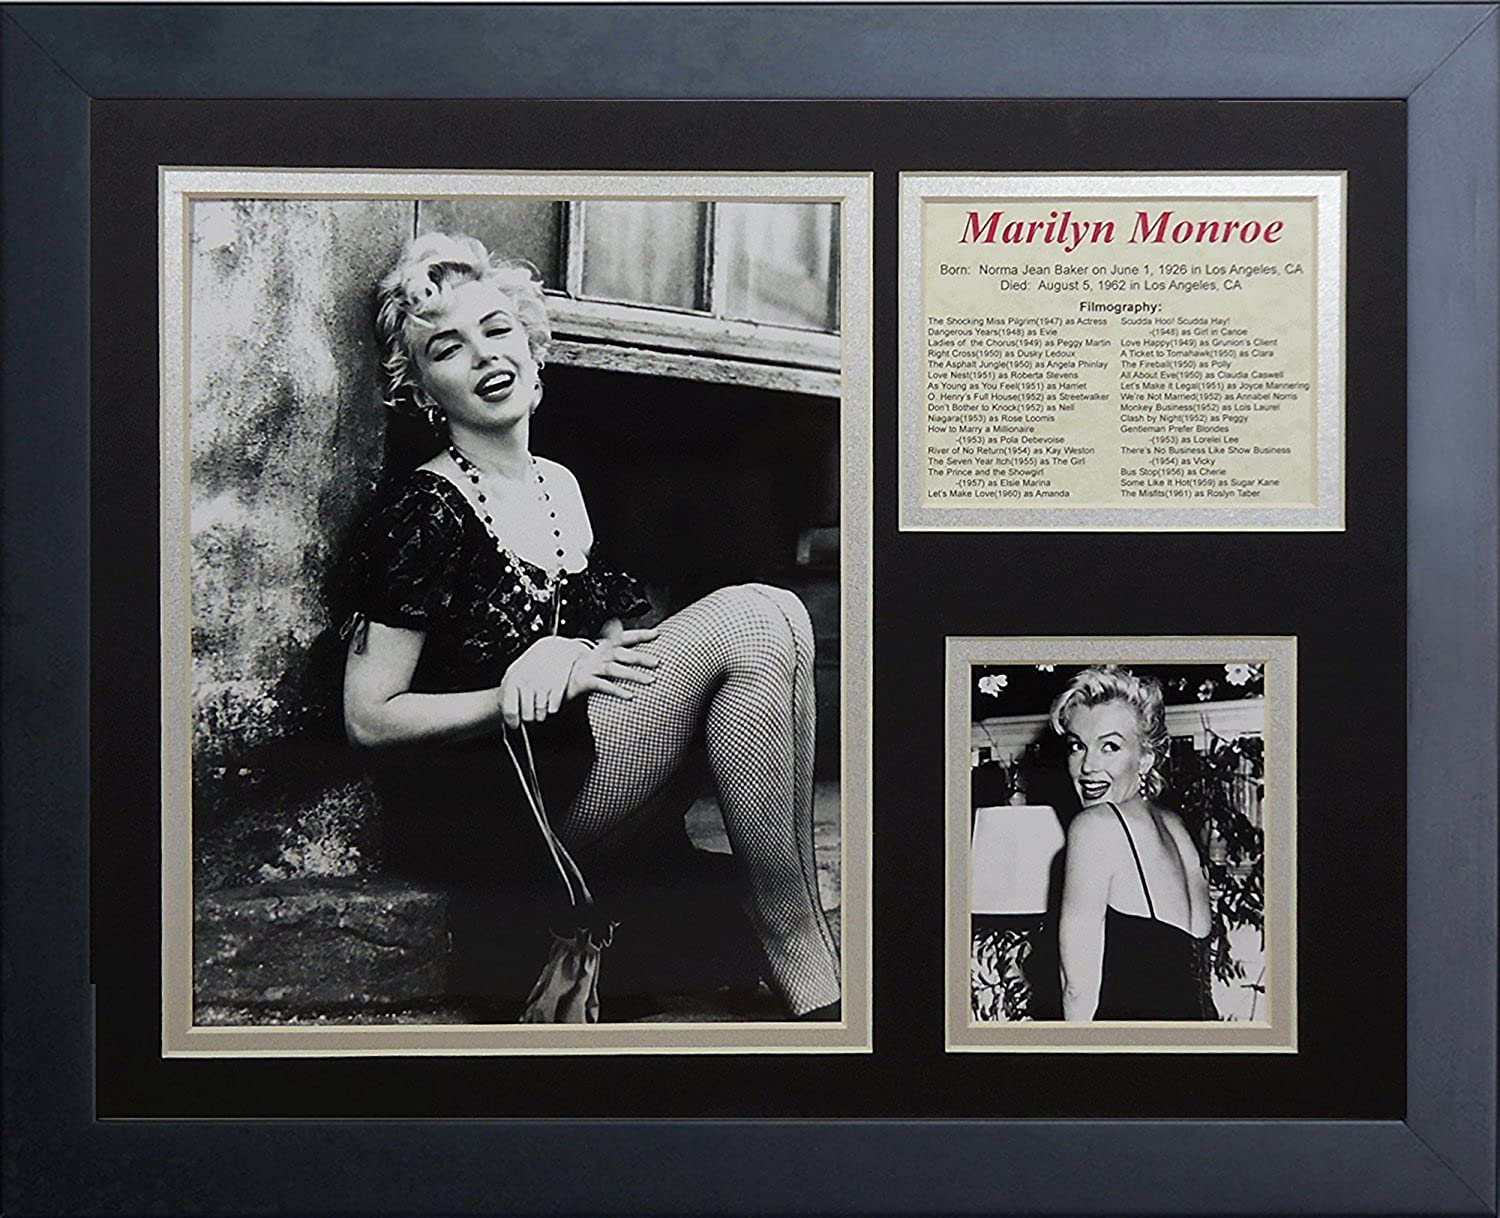 Legends Never Die Marilyn Monroe Framed Photo Collage, 11 by 14-Inch